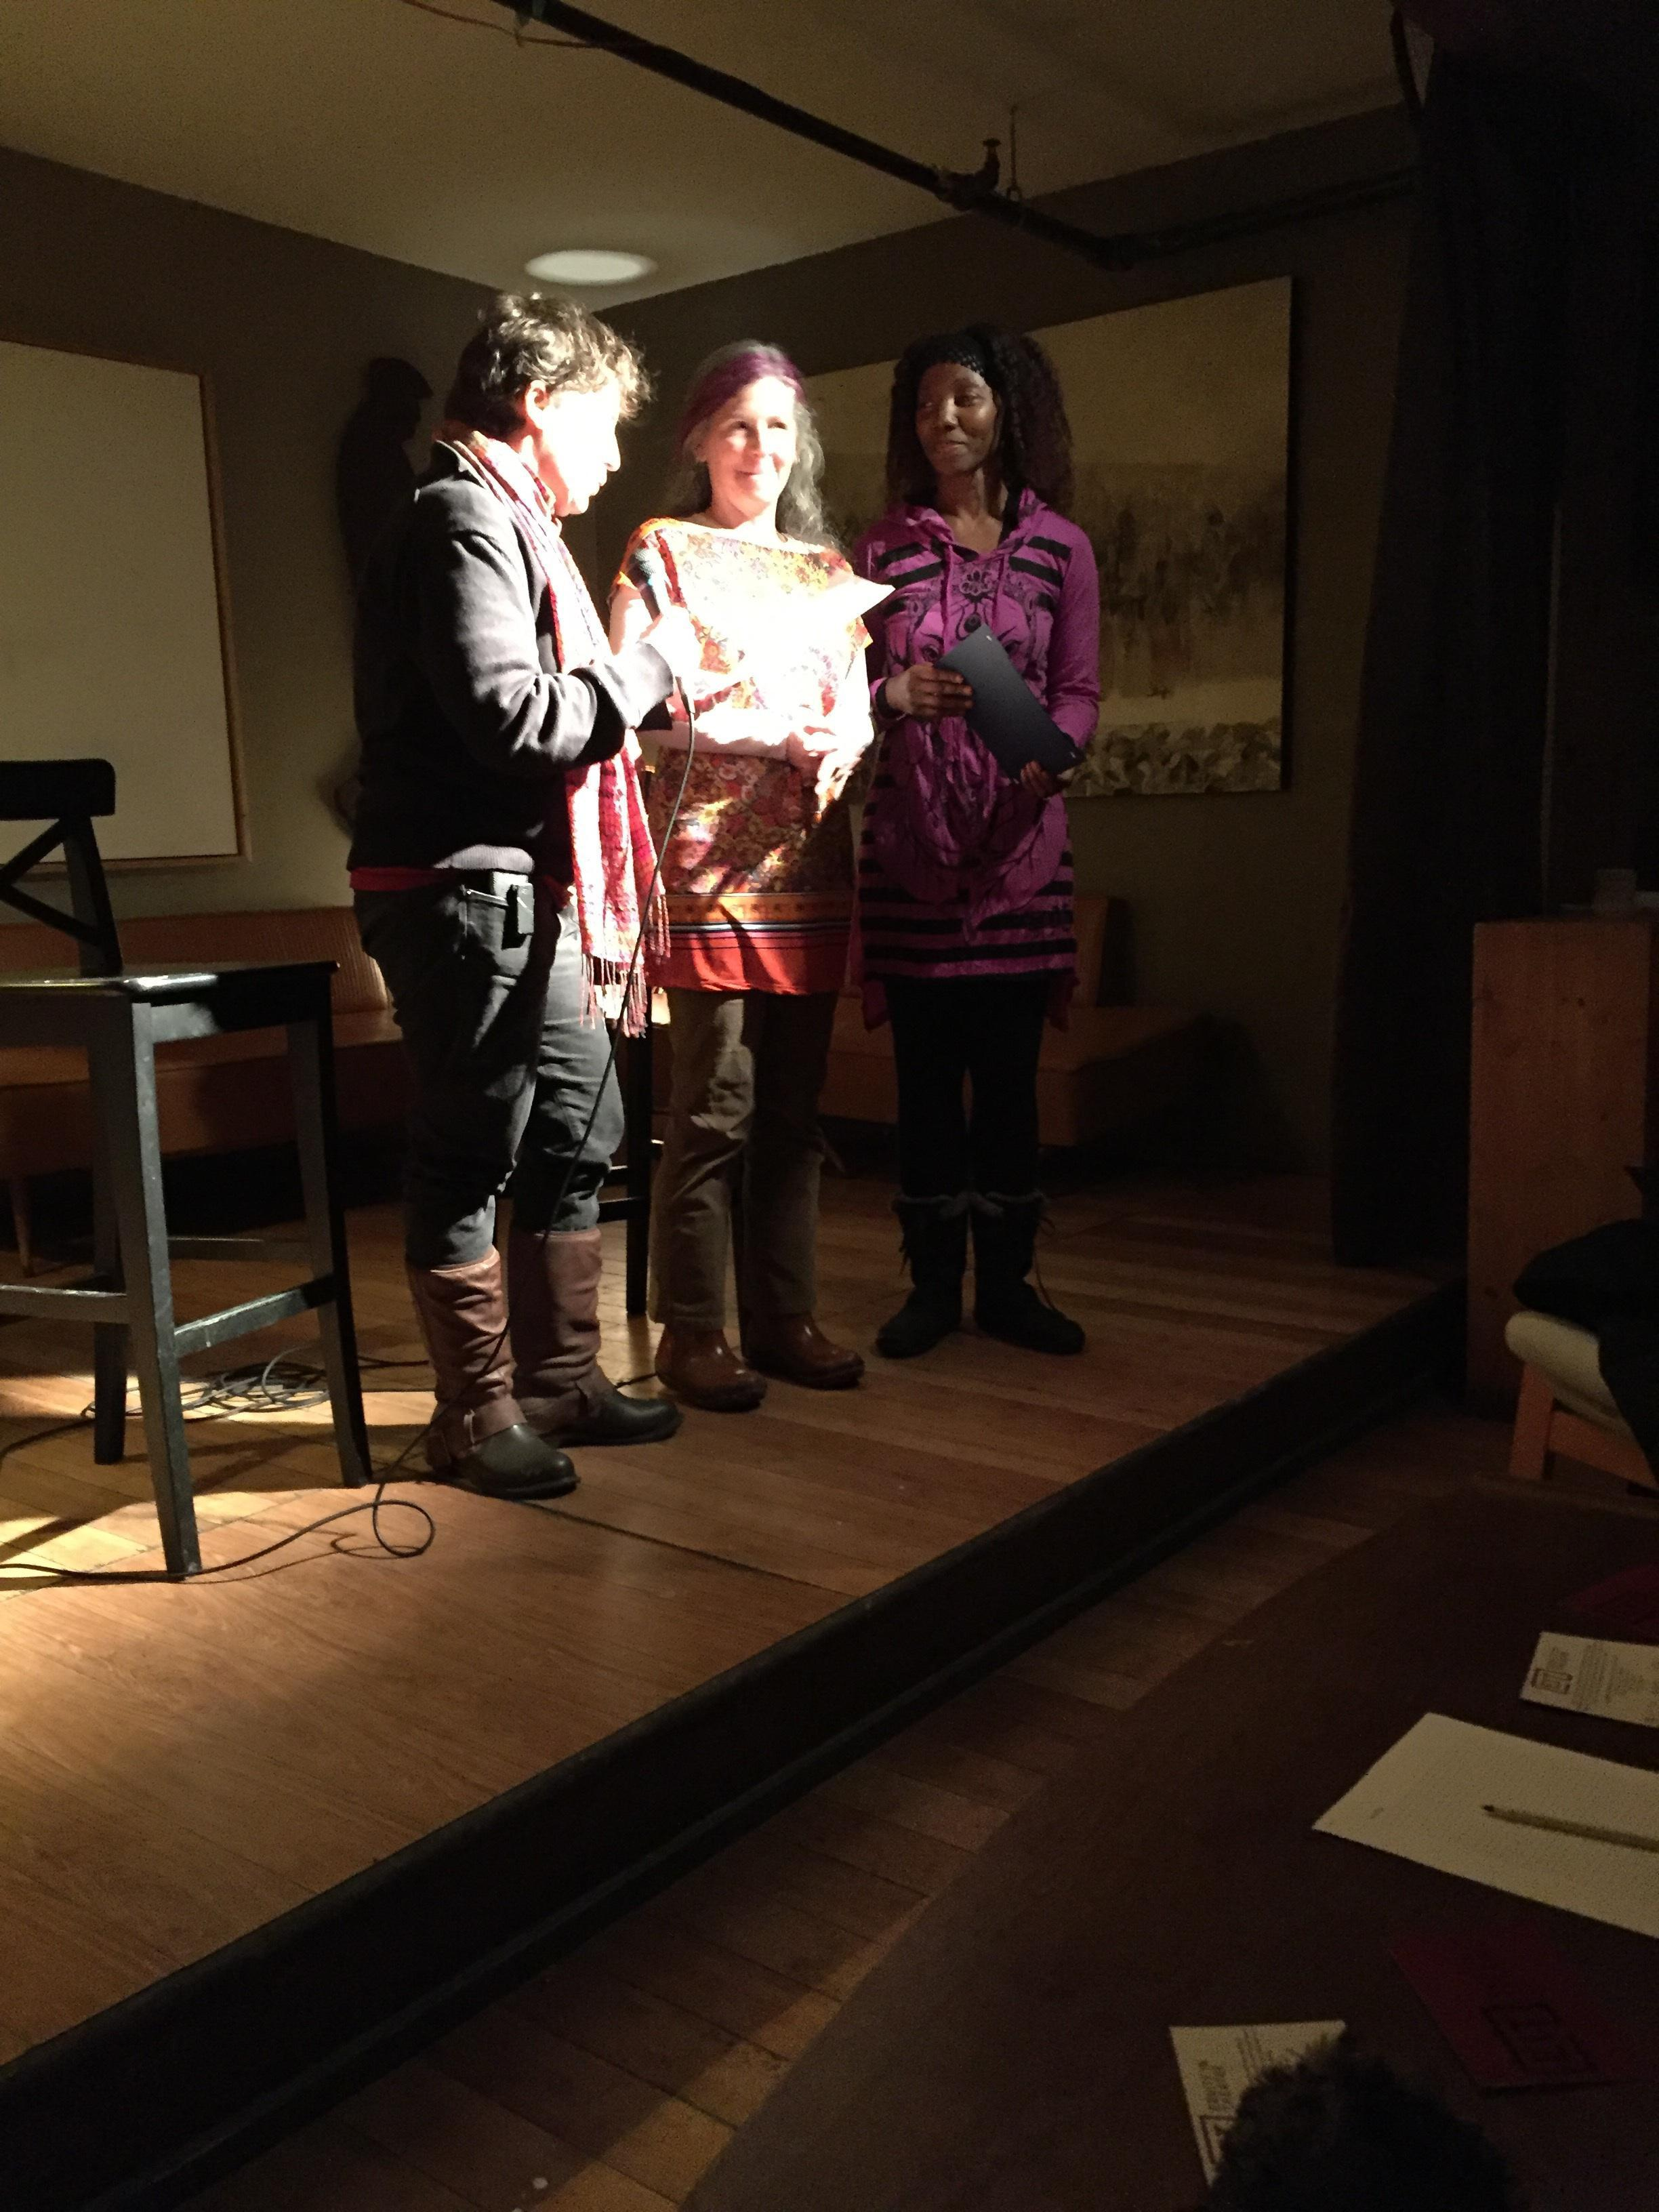 Lois Fine (Left) and Alicia Payne (Right) presenting Rebecca Burton (middle) with the Bra D'Or Award